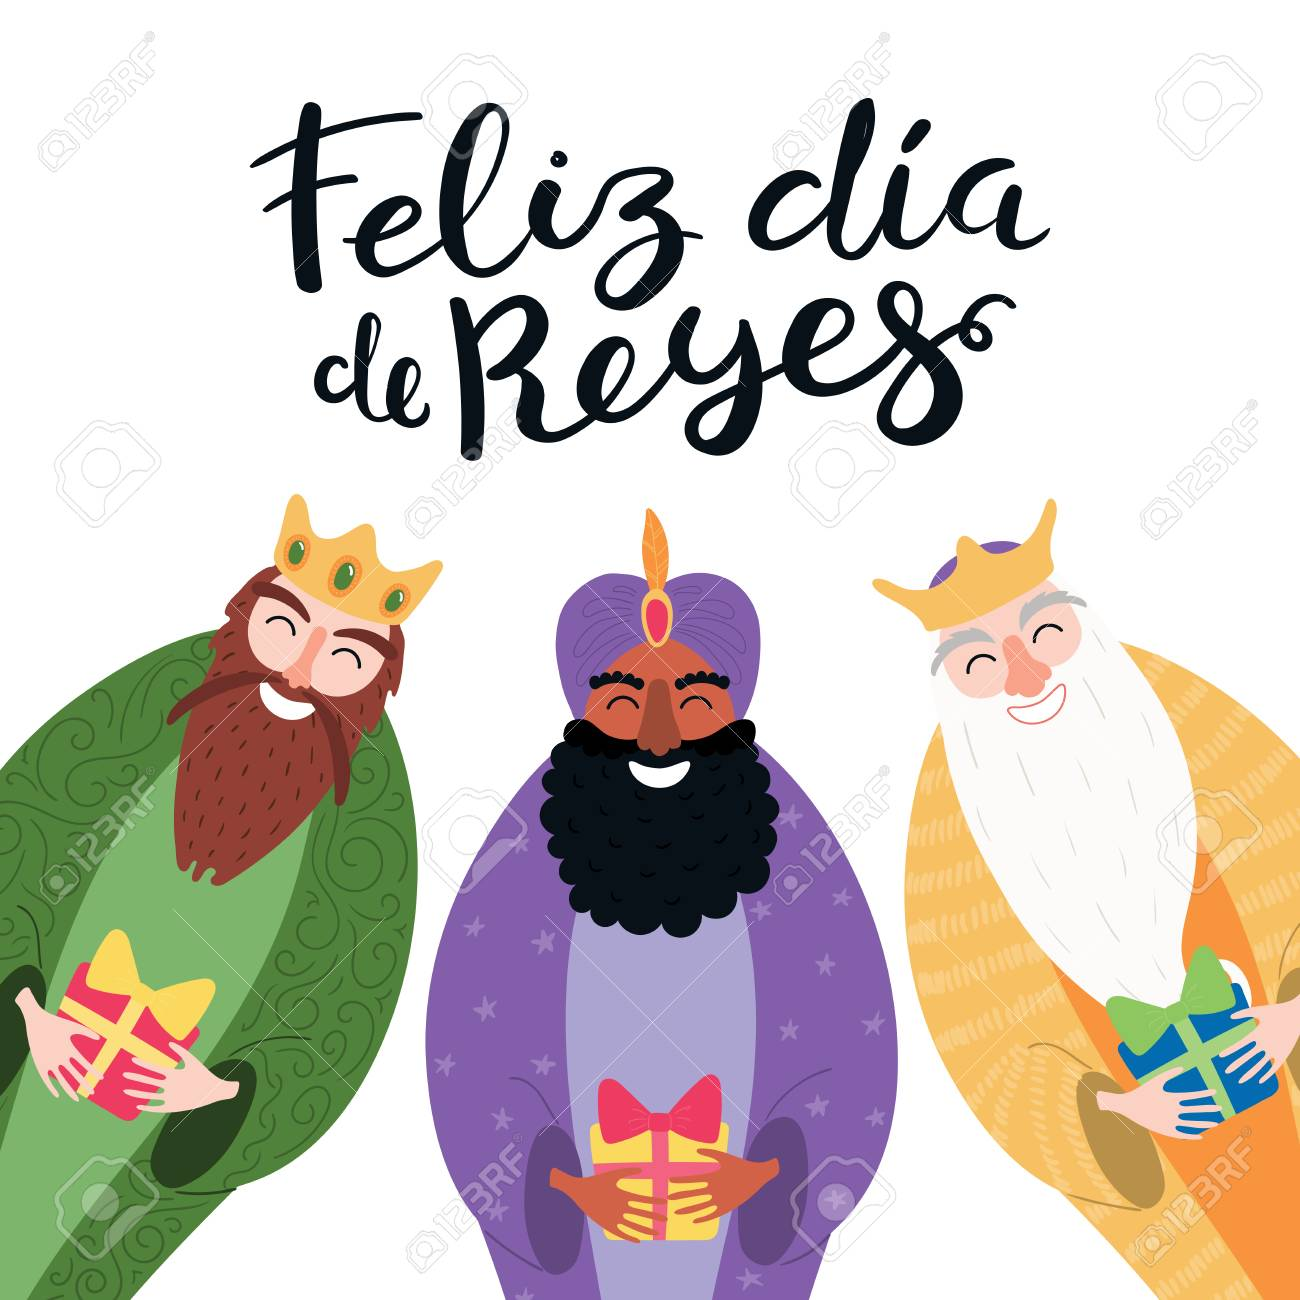 Hand drawn vector illustration of three kings with gifts, Spanish quote Feliz Dia de Reyes, Happy Kings Day. Isolated objects on white. Flat style design. Concept, element for Epiphany card, banner. - 112881452